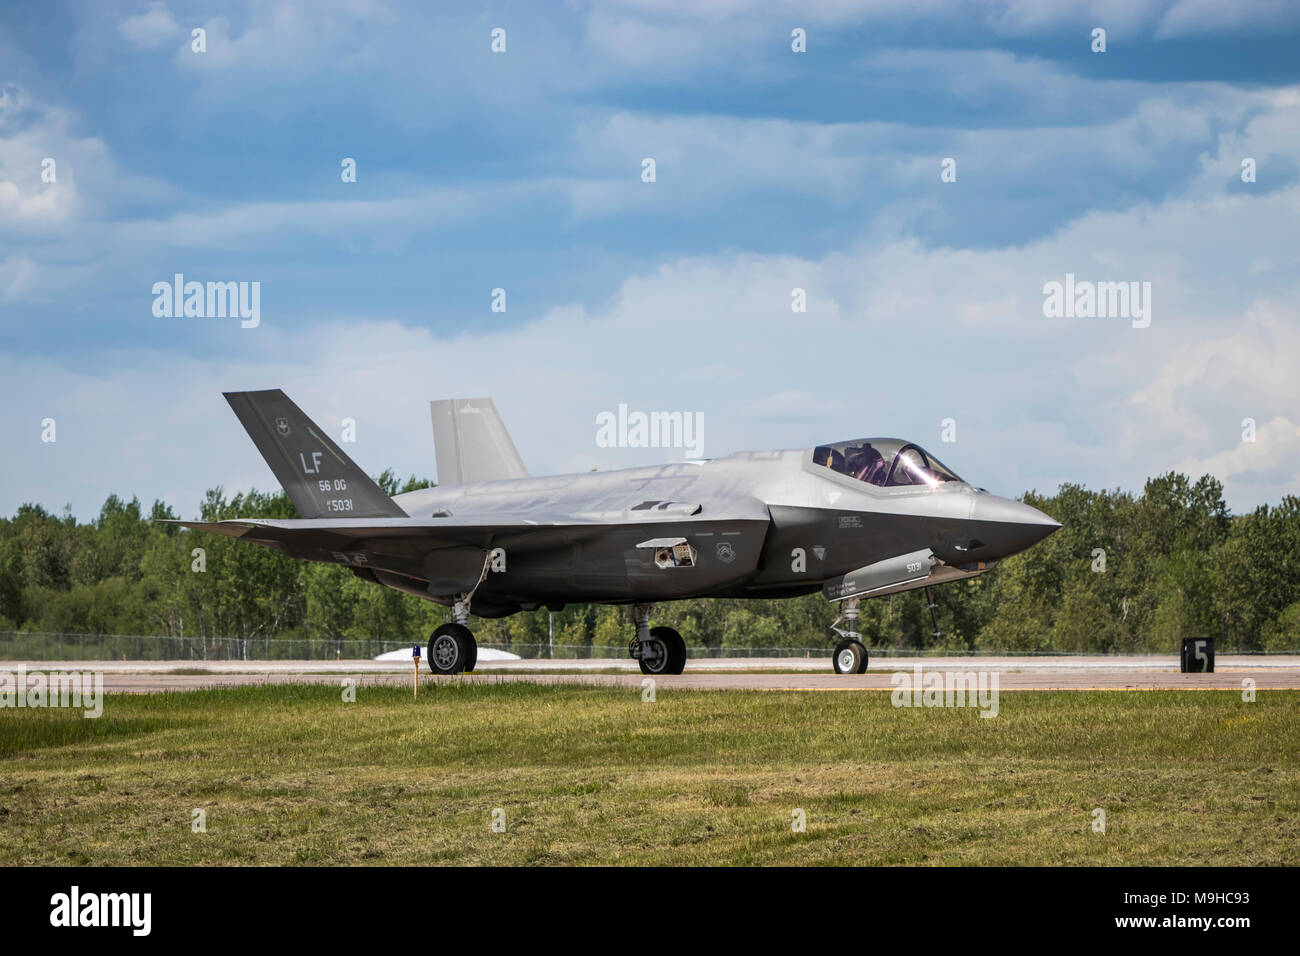 A Lock Martin F-35A fighter jet being prepared for takeoff at the 2017 Airshow at Duluth, Minnesota, USA. - Stock Image